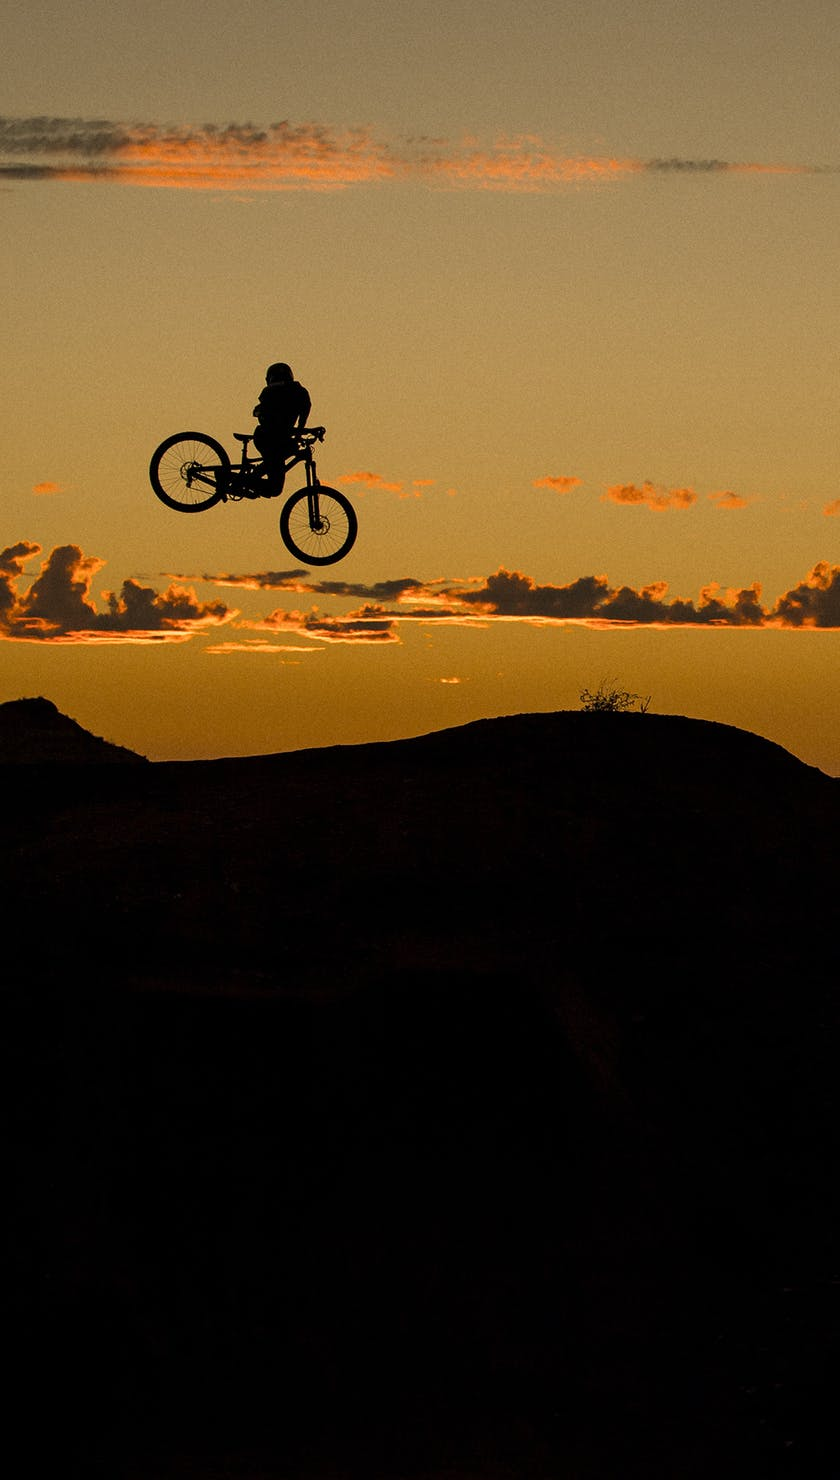 Reed Boggs From Then Till Now - Sunset whips